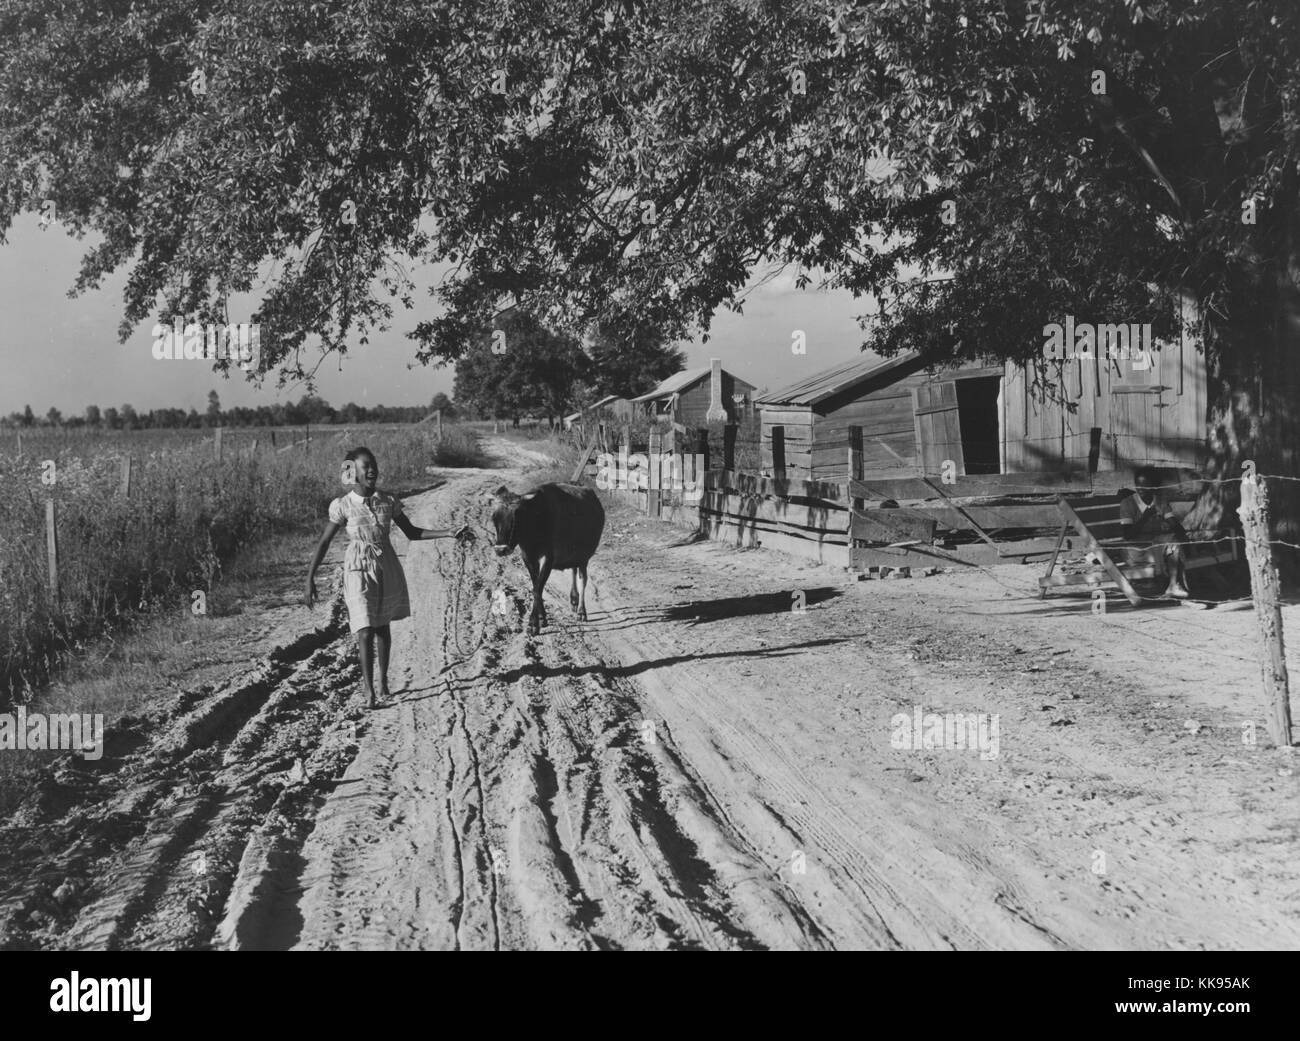 Black and white photograph of a young African-American woman bringing home cow from the fields in the evening, walking - Stock Image